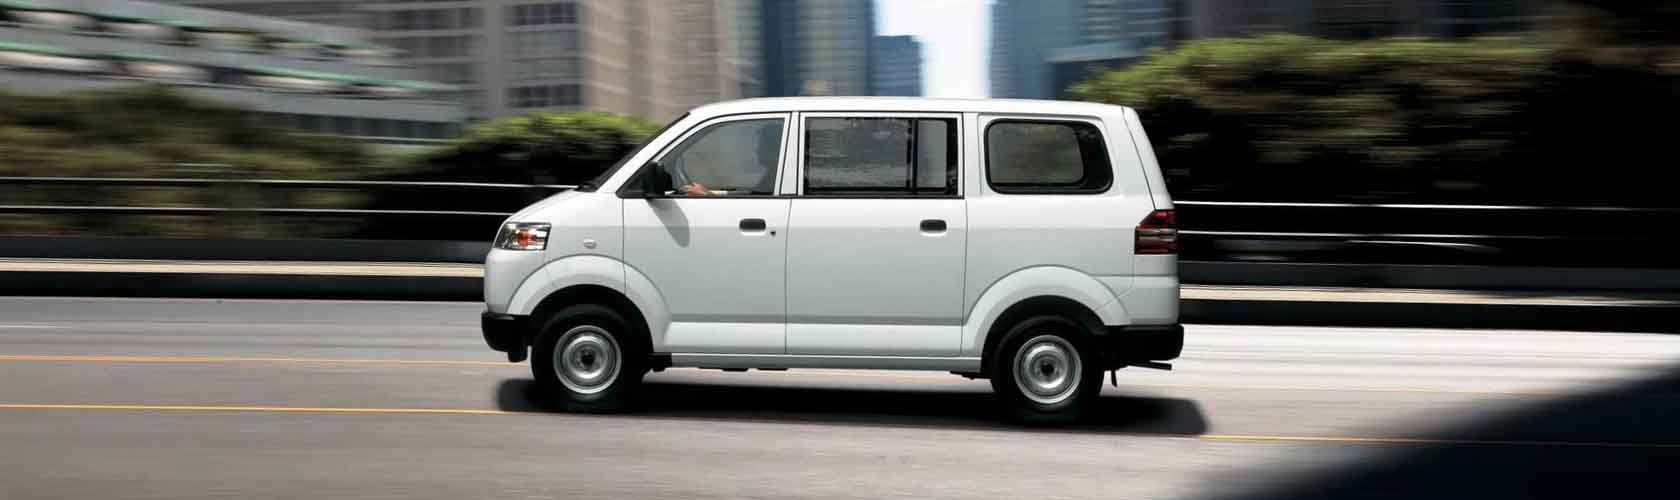 APV for rent in islamabad